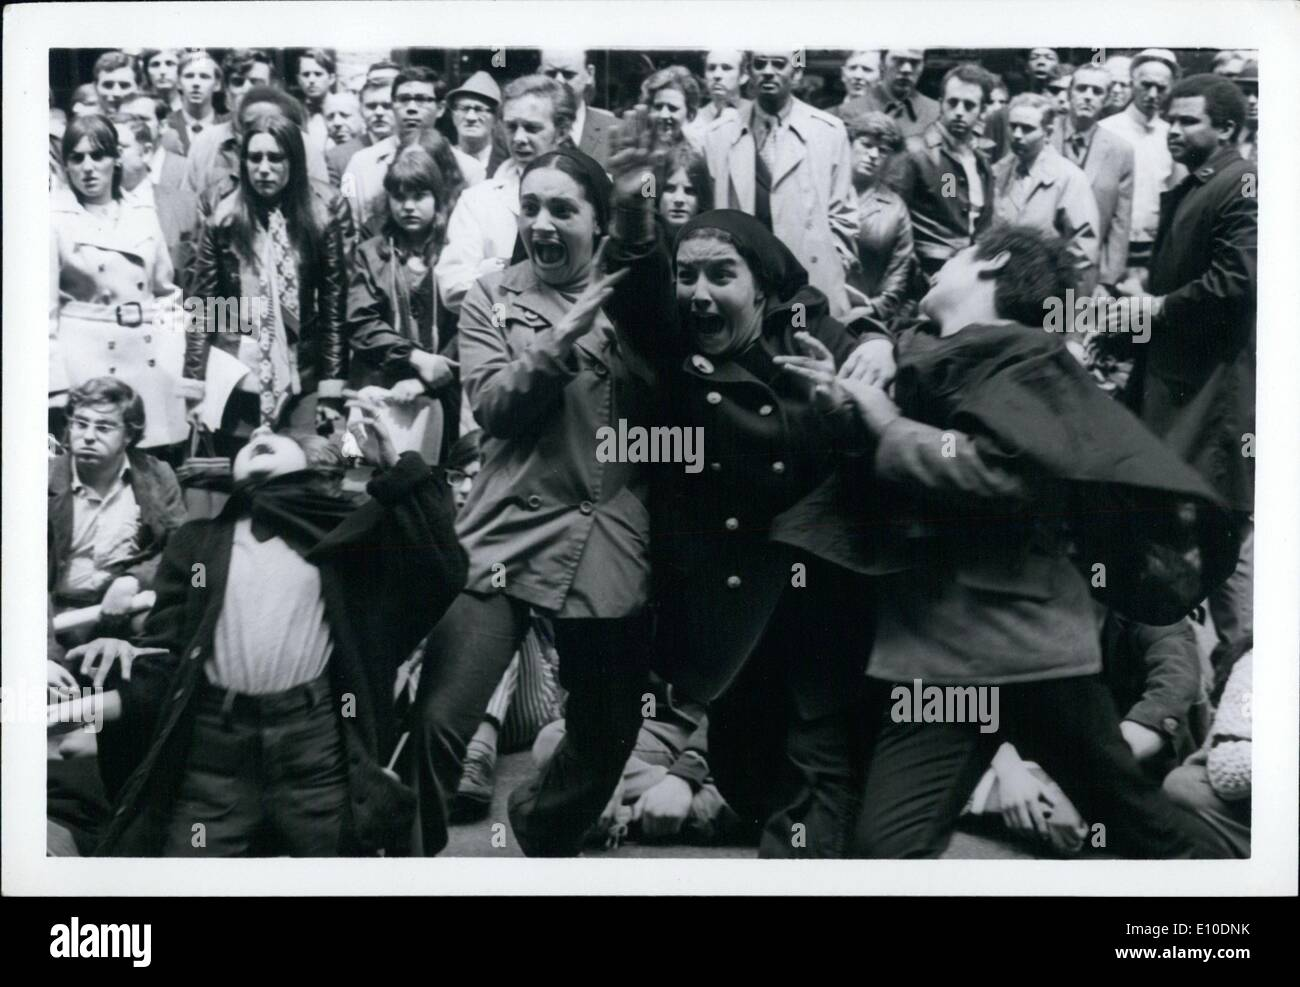 May 05, 1972 - Students from School of performing arts Street theater war and muder of Kent State Students at Dorchester. - Stock Image